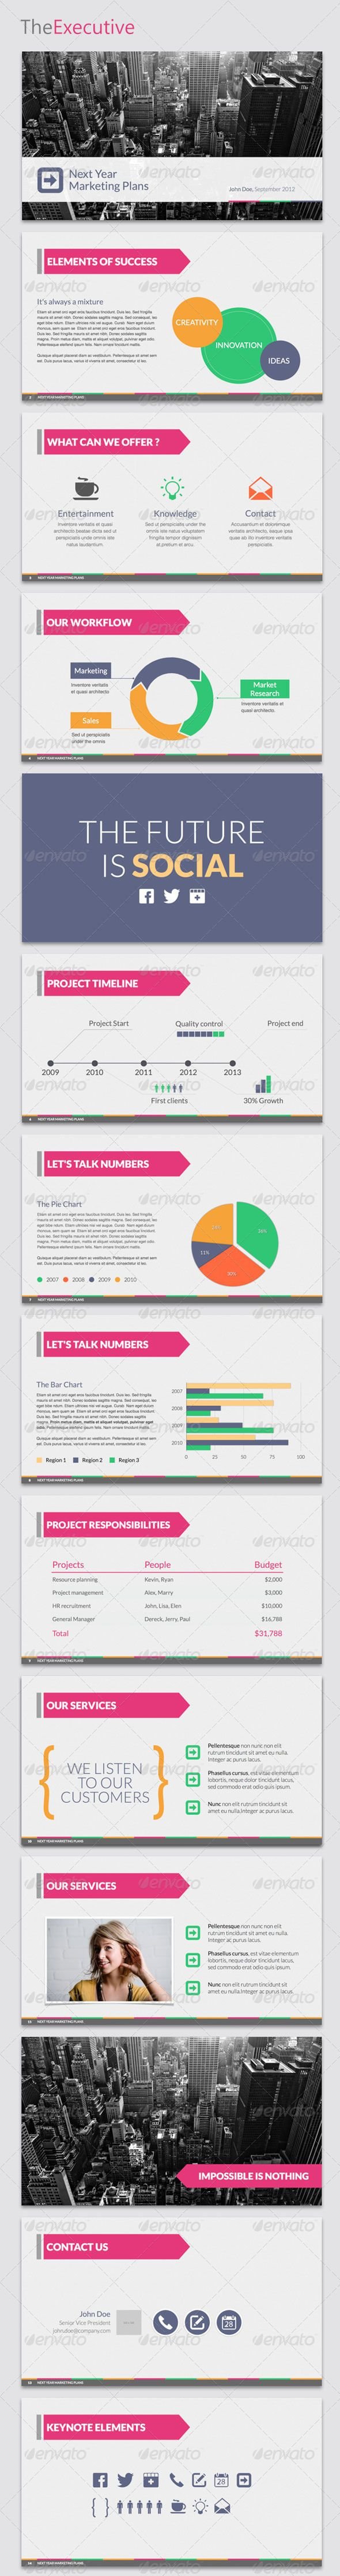 124 best images about keynote themes    templates on